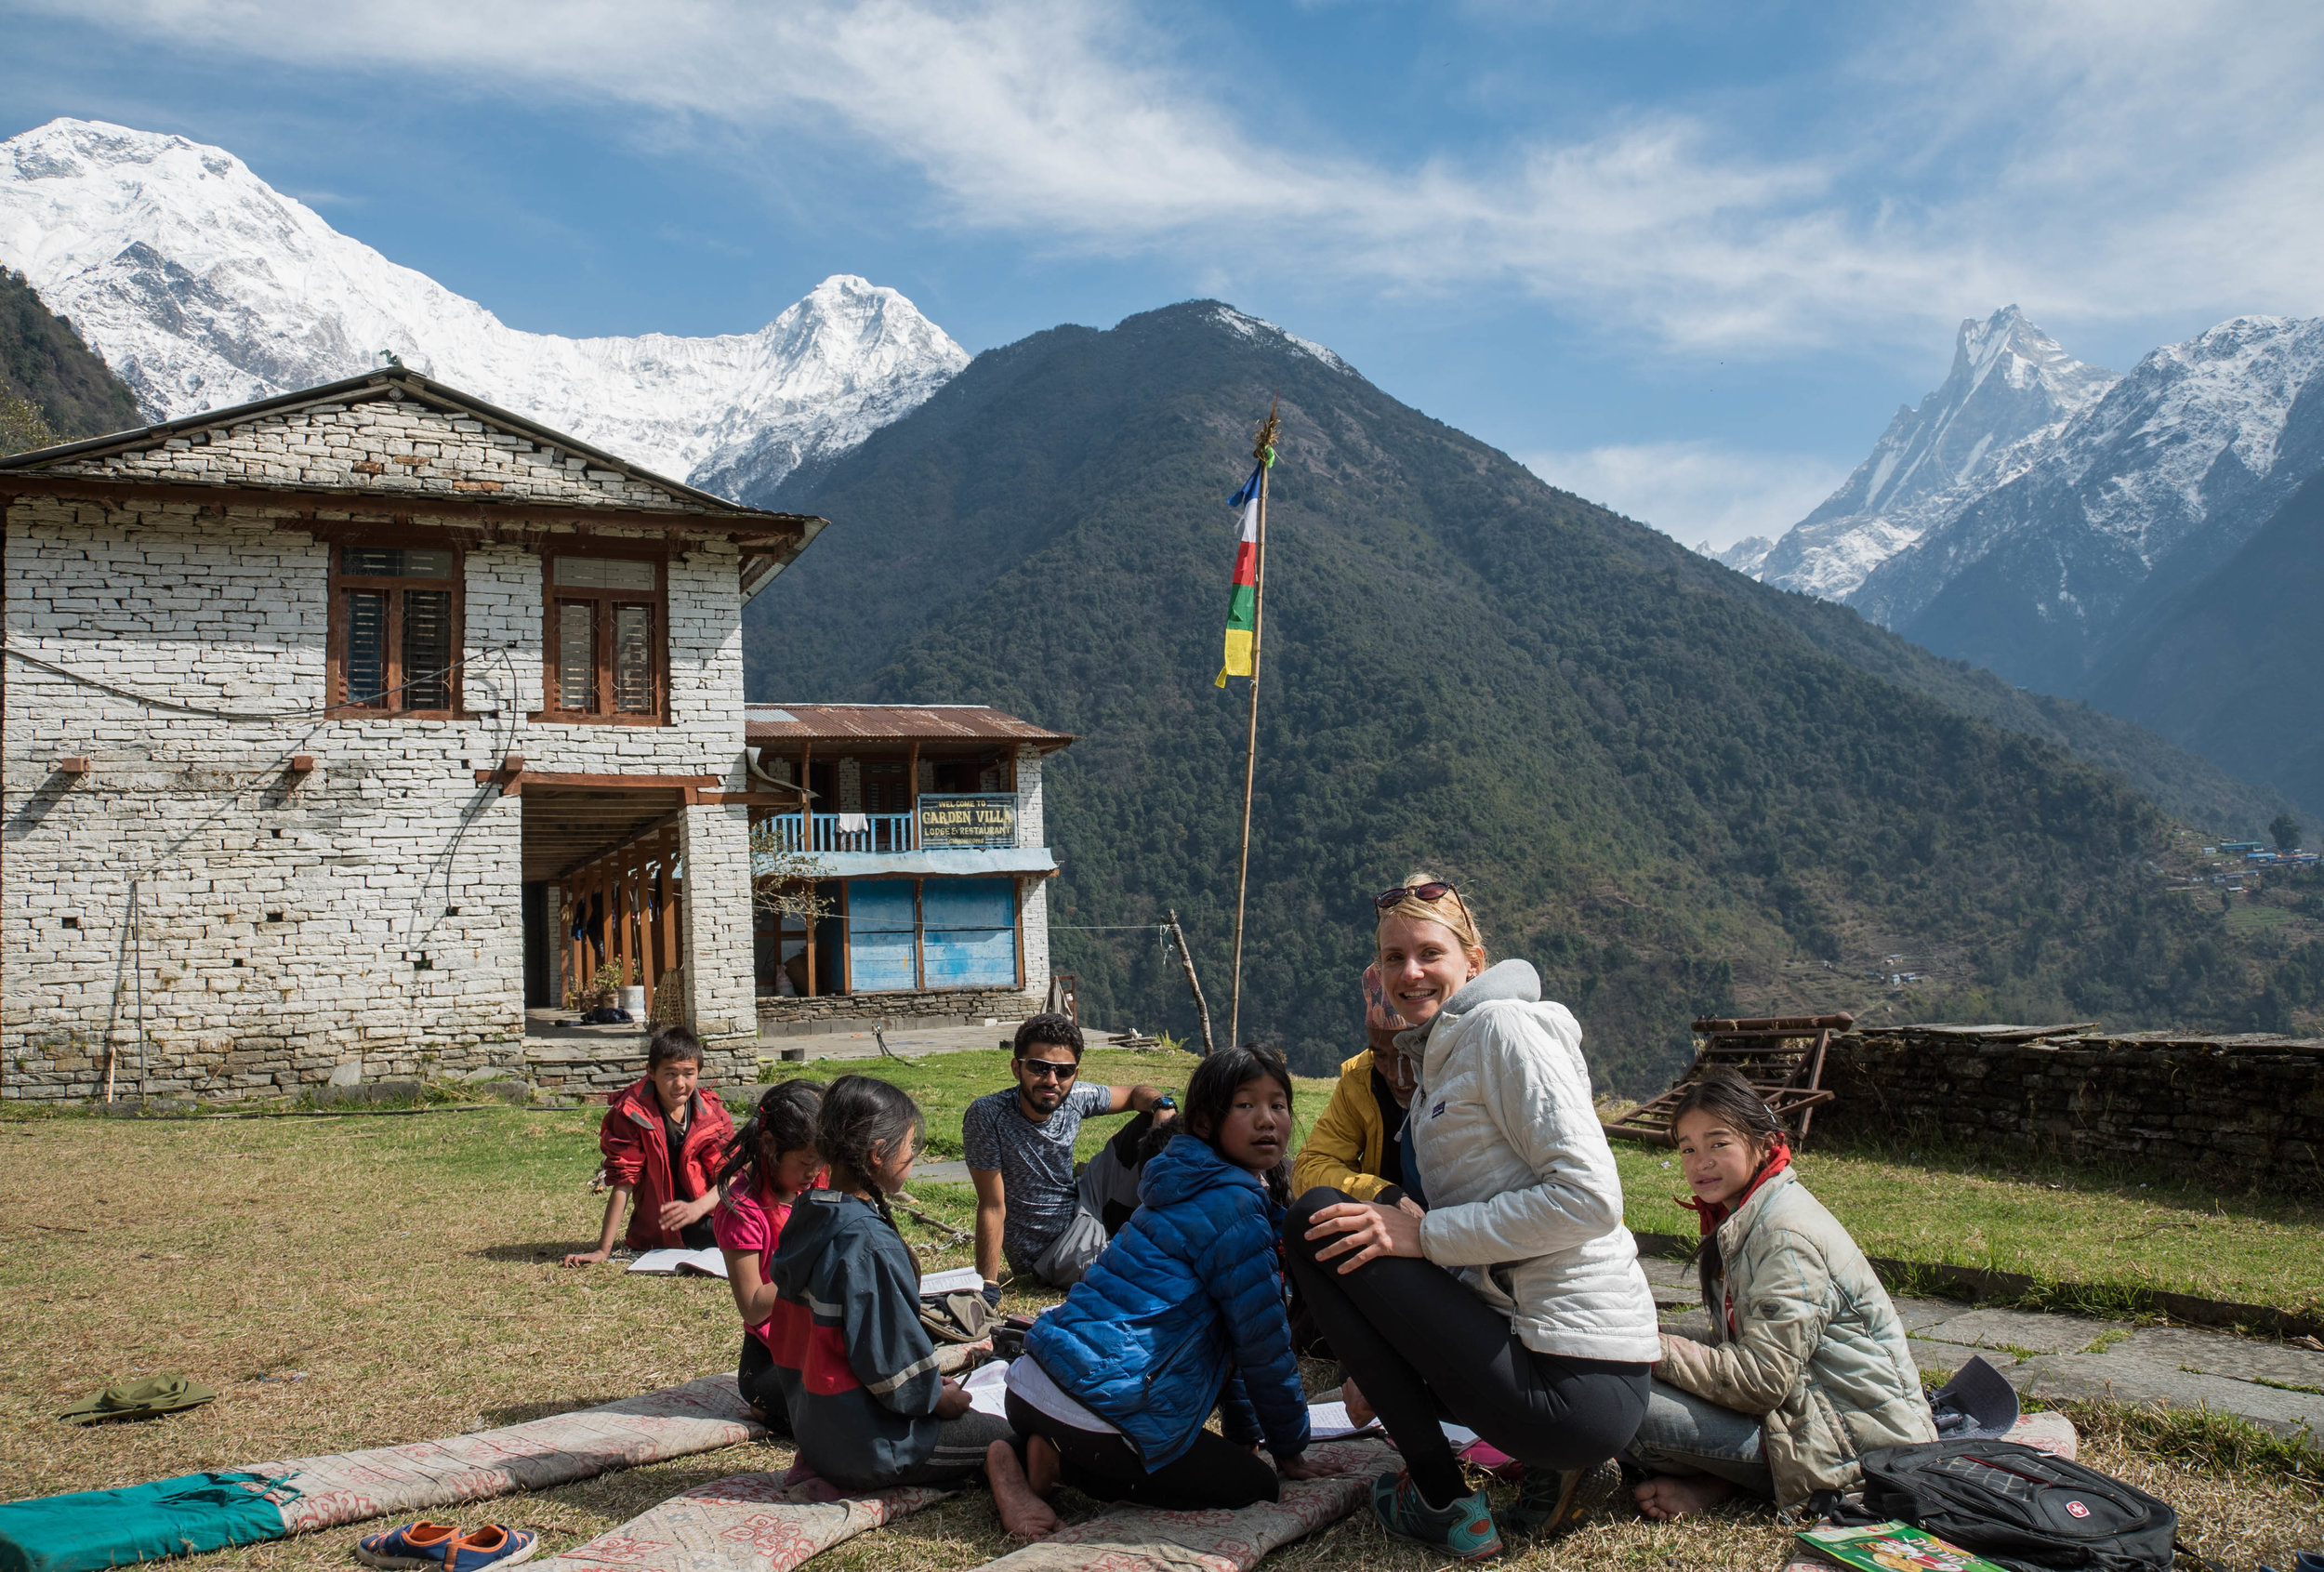 A school in a village along the way to Annapurna Base Camp. We helped with their english homework